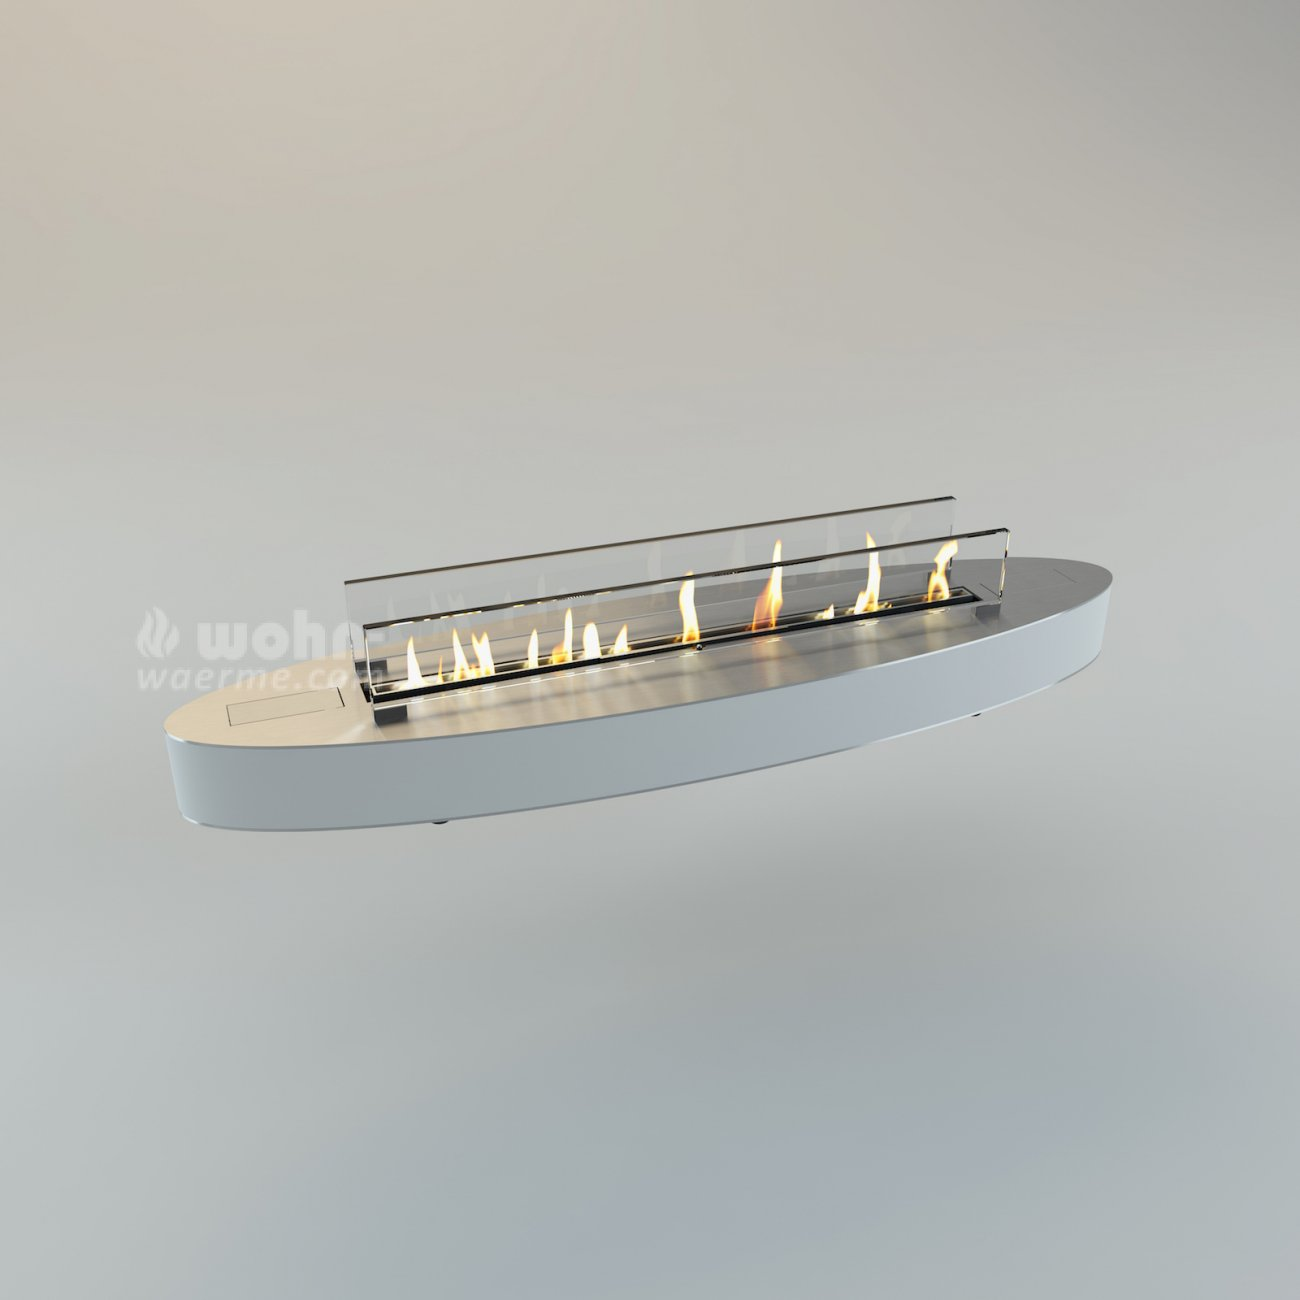 Decoflame Ellipse Flueless Fire: Design Ethanol Tischkamin Decoflame Denver Ellipse